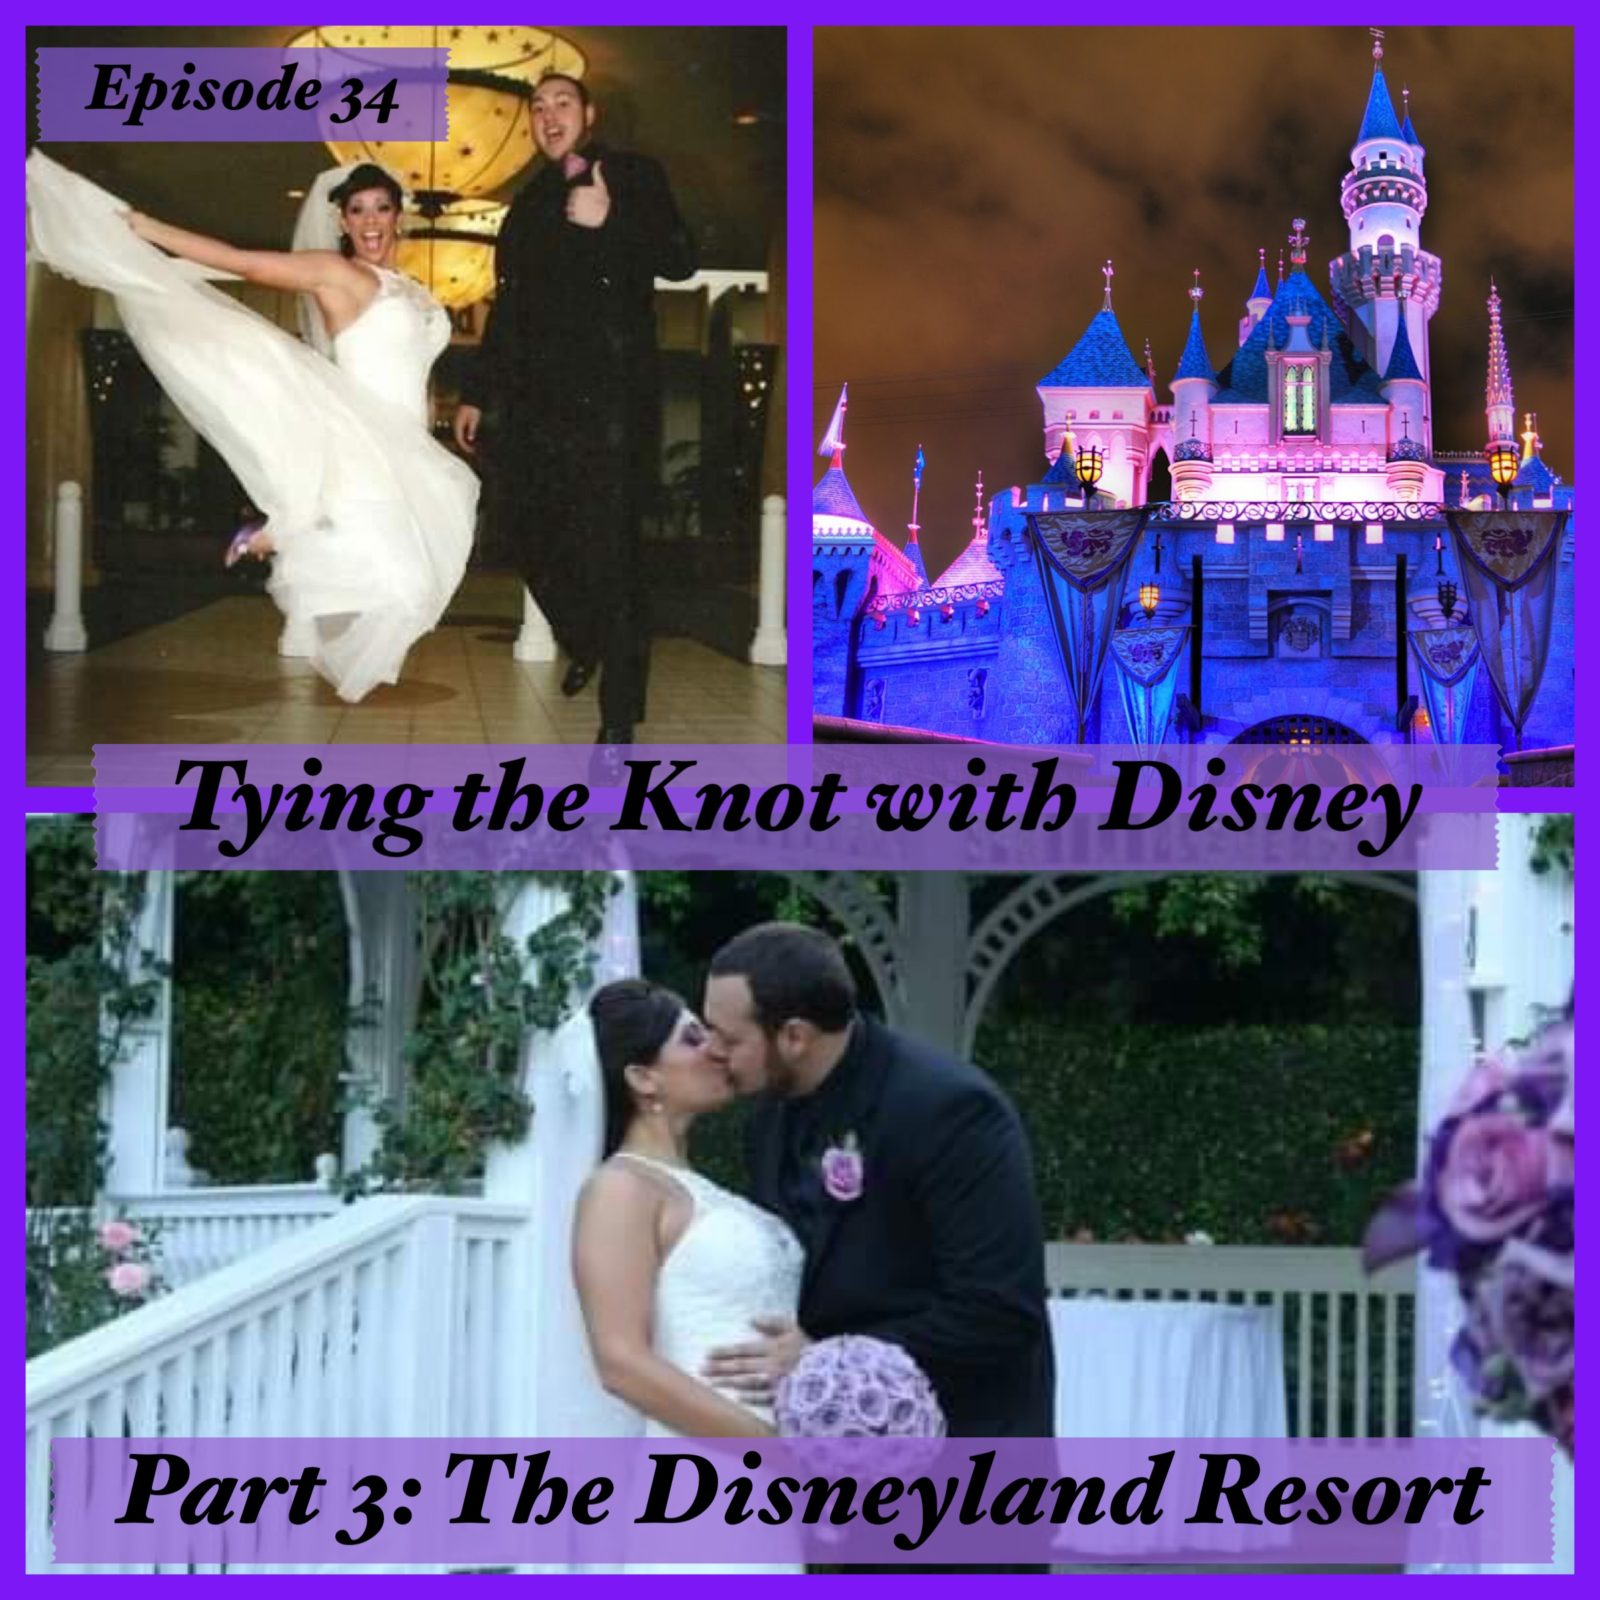 Tying the Knot with Disney - Disneyland Weddings